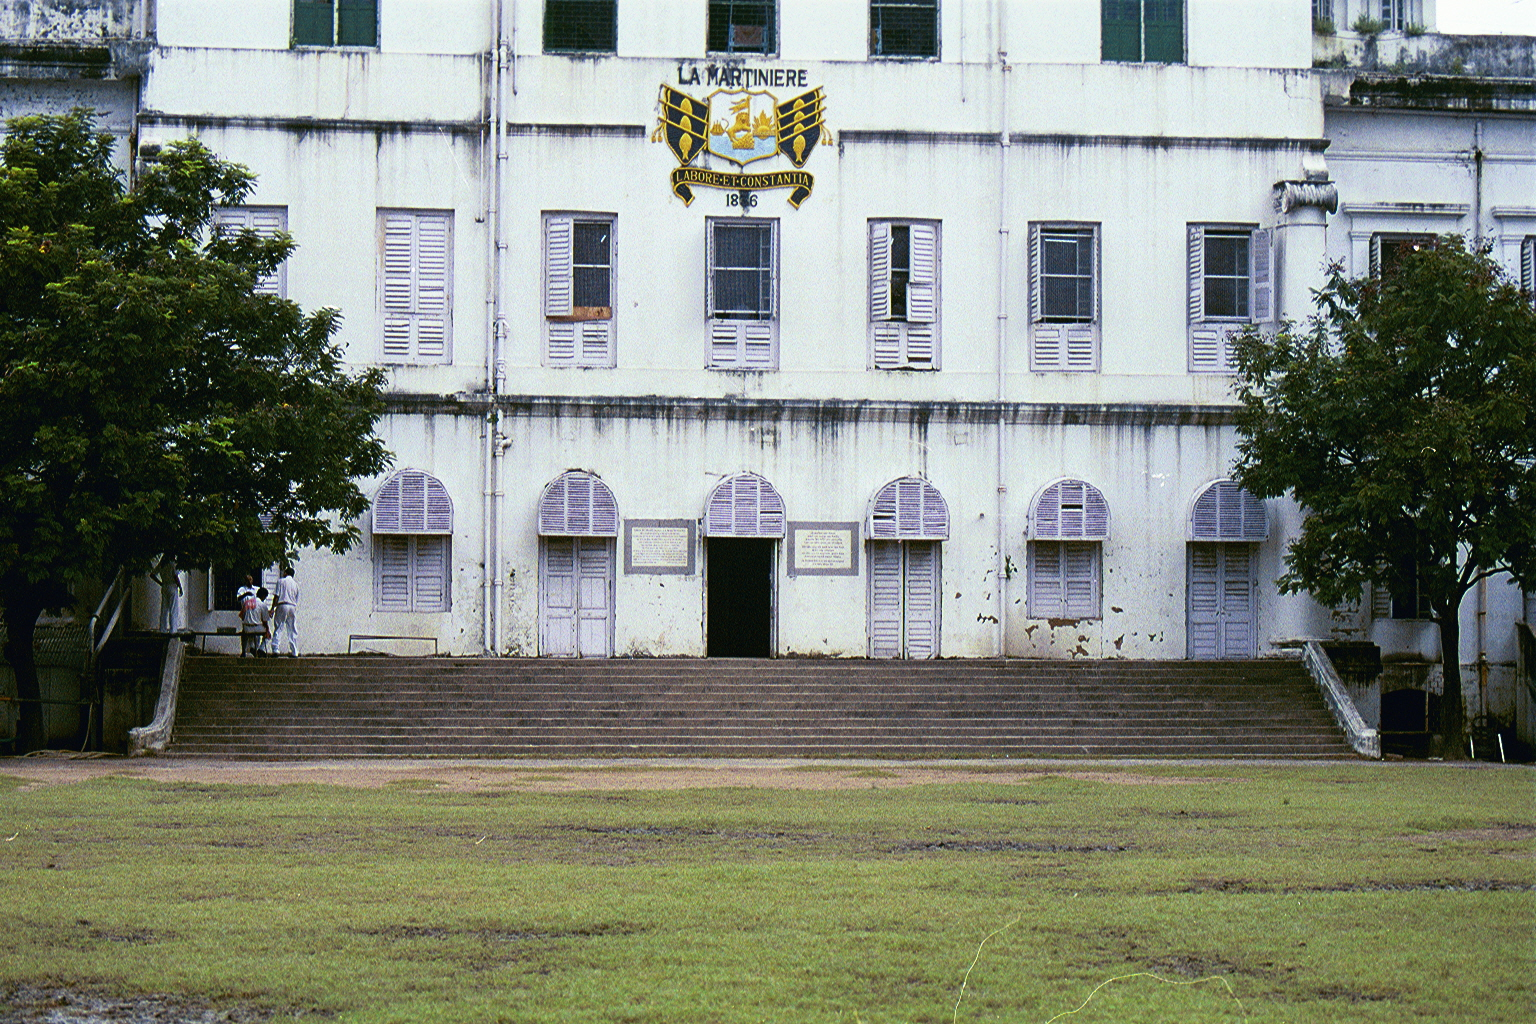 'La-Martiniere School' was founded in 1837 by Major-General CLAUDE MARTIN.  'La-Martiniere' has 3 campuses. (1) La-Martiniere, Calcutta, India; (2) La-Martiniere College, Lucknow, India; & La-Martiniere College, Lyons, France;